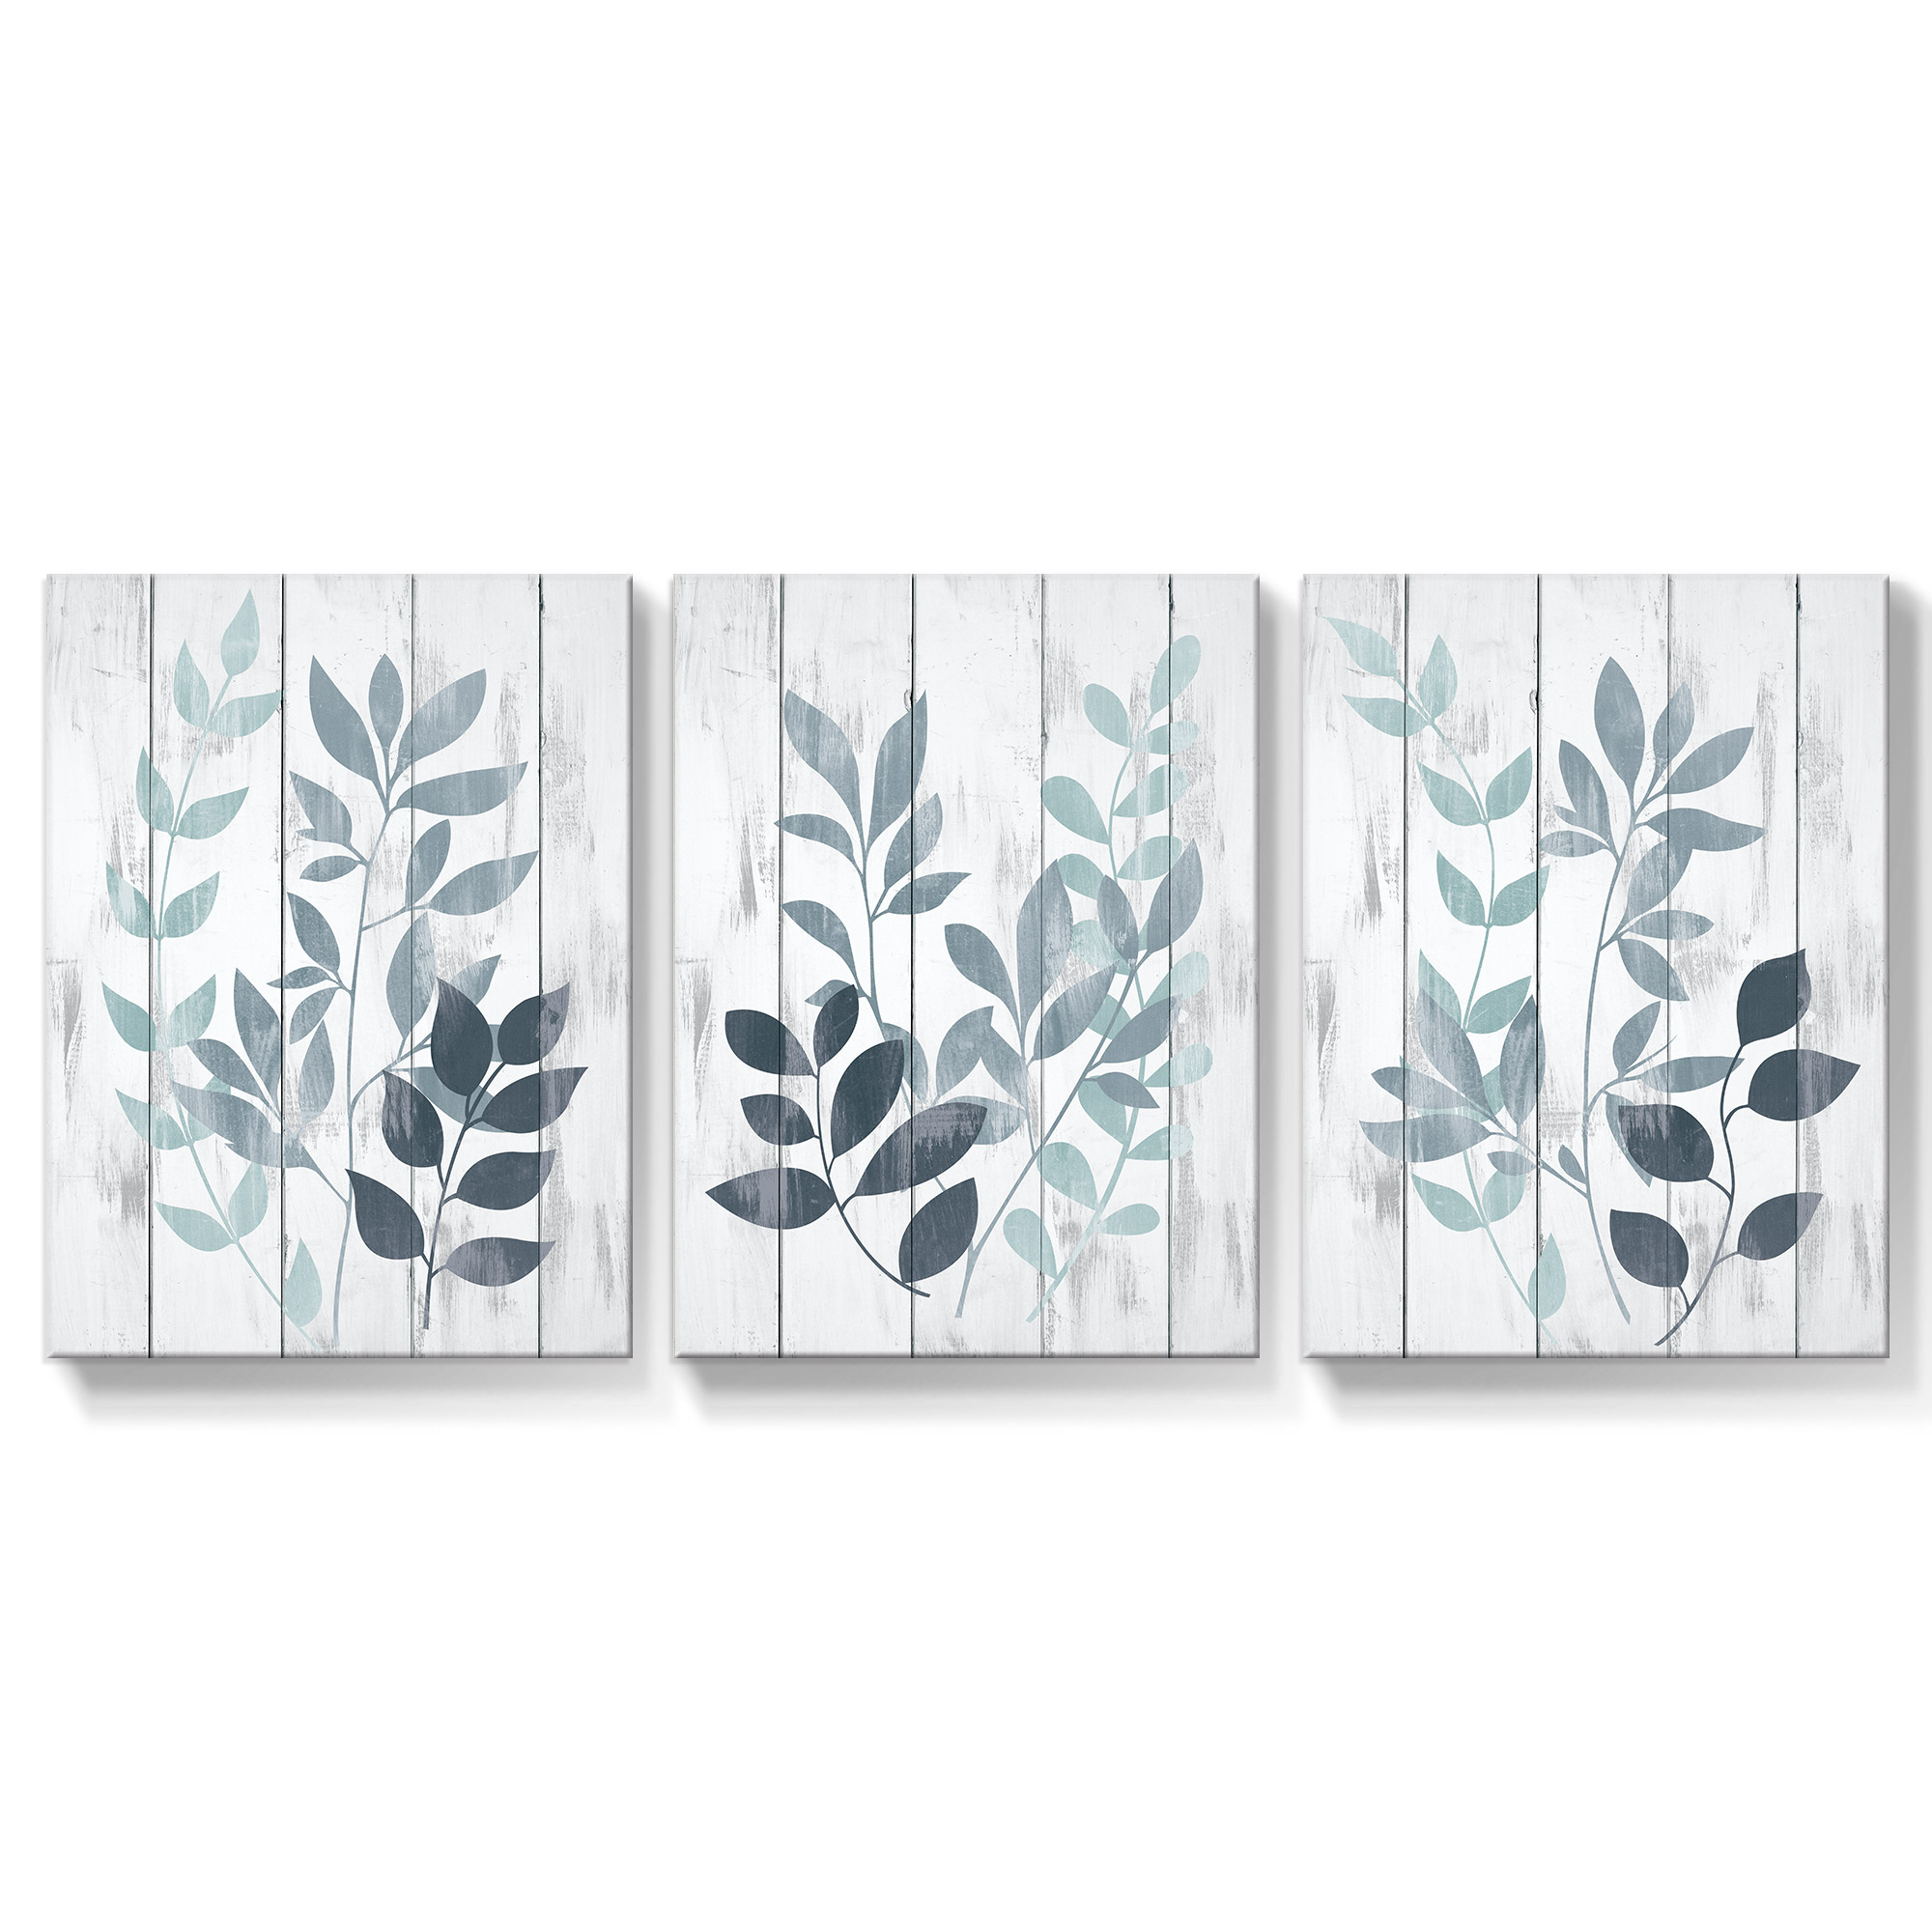 Leaf Wall Art Canvas Painting Farmhouse Pictures Botanical Posters For Bedroom Blue Grey Bathroom Prints Nordic Home Decor Painting Calligraphy Aliexpress